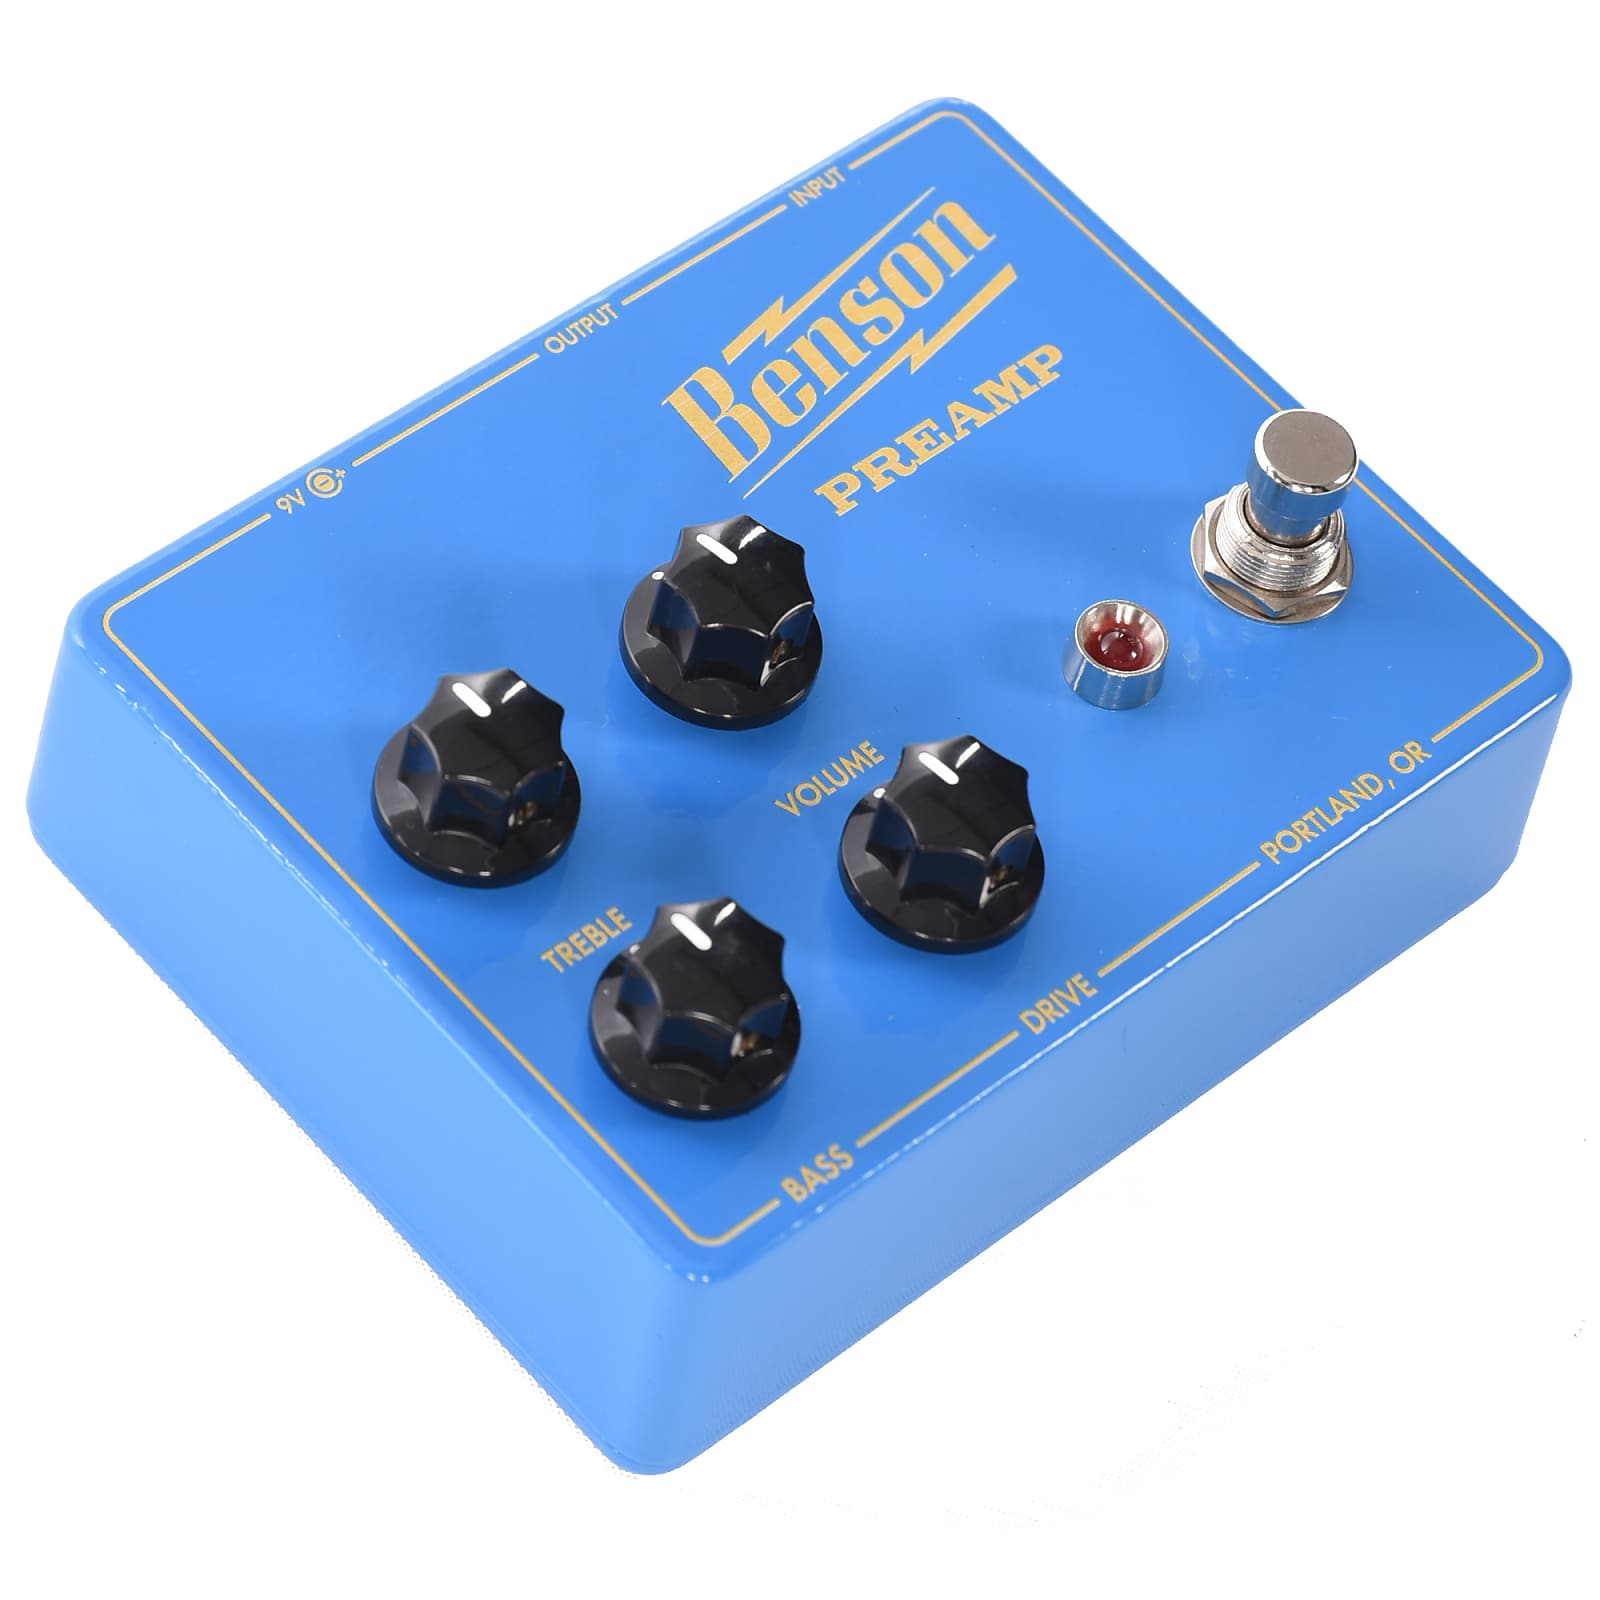 Benson Amps Preamp Pedal CME Exclusive Limited Edition